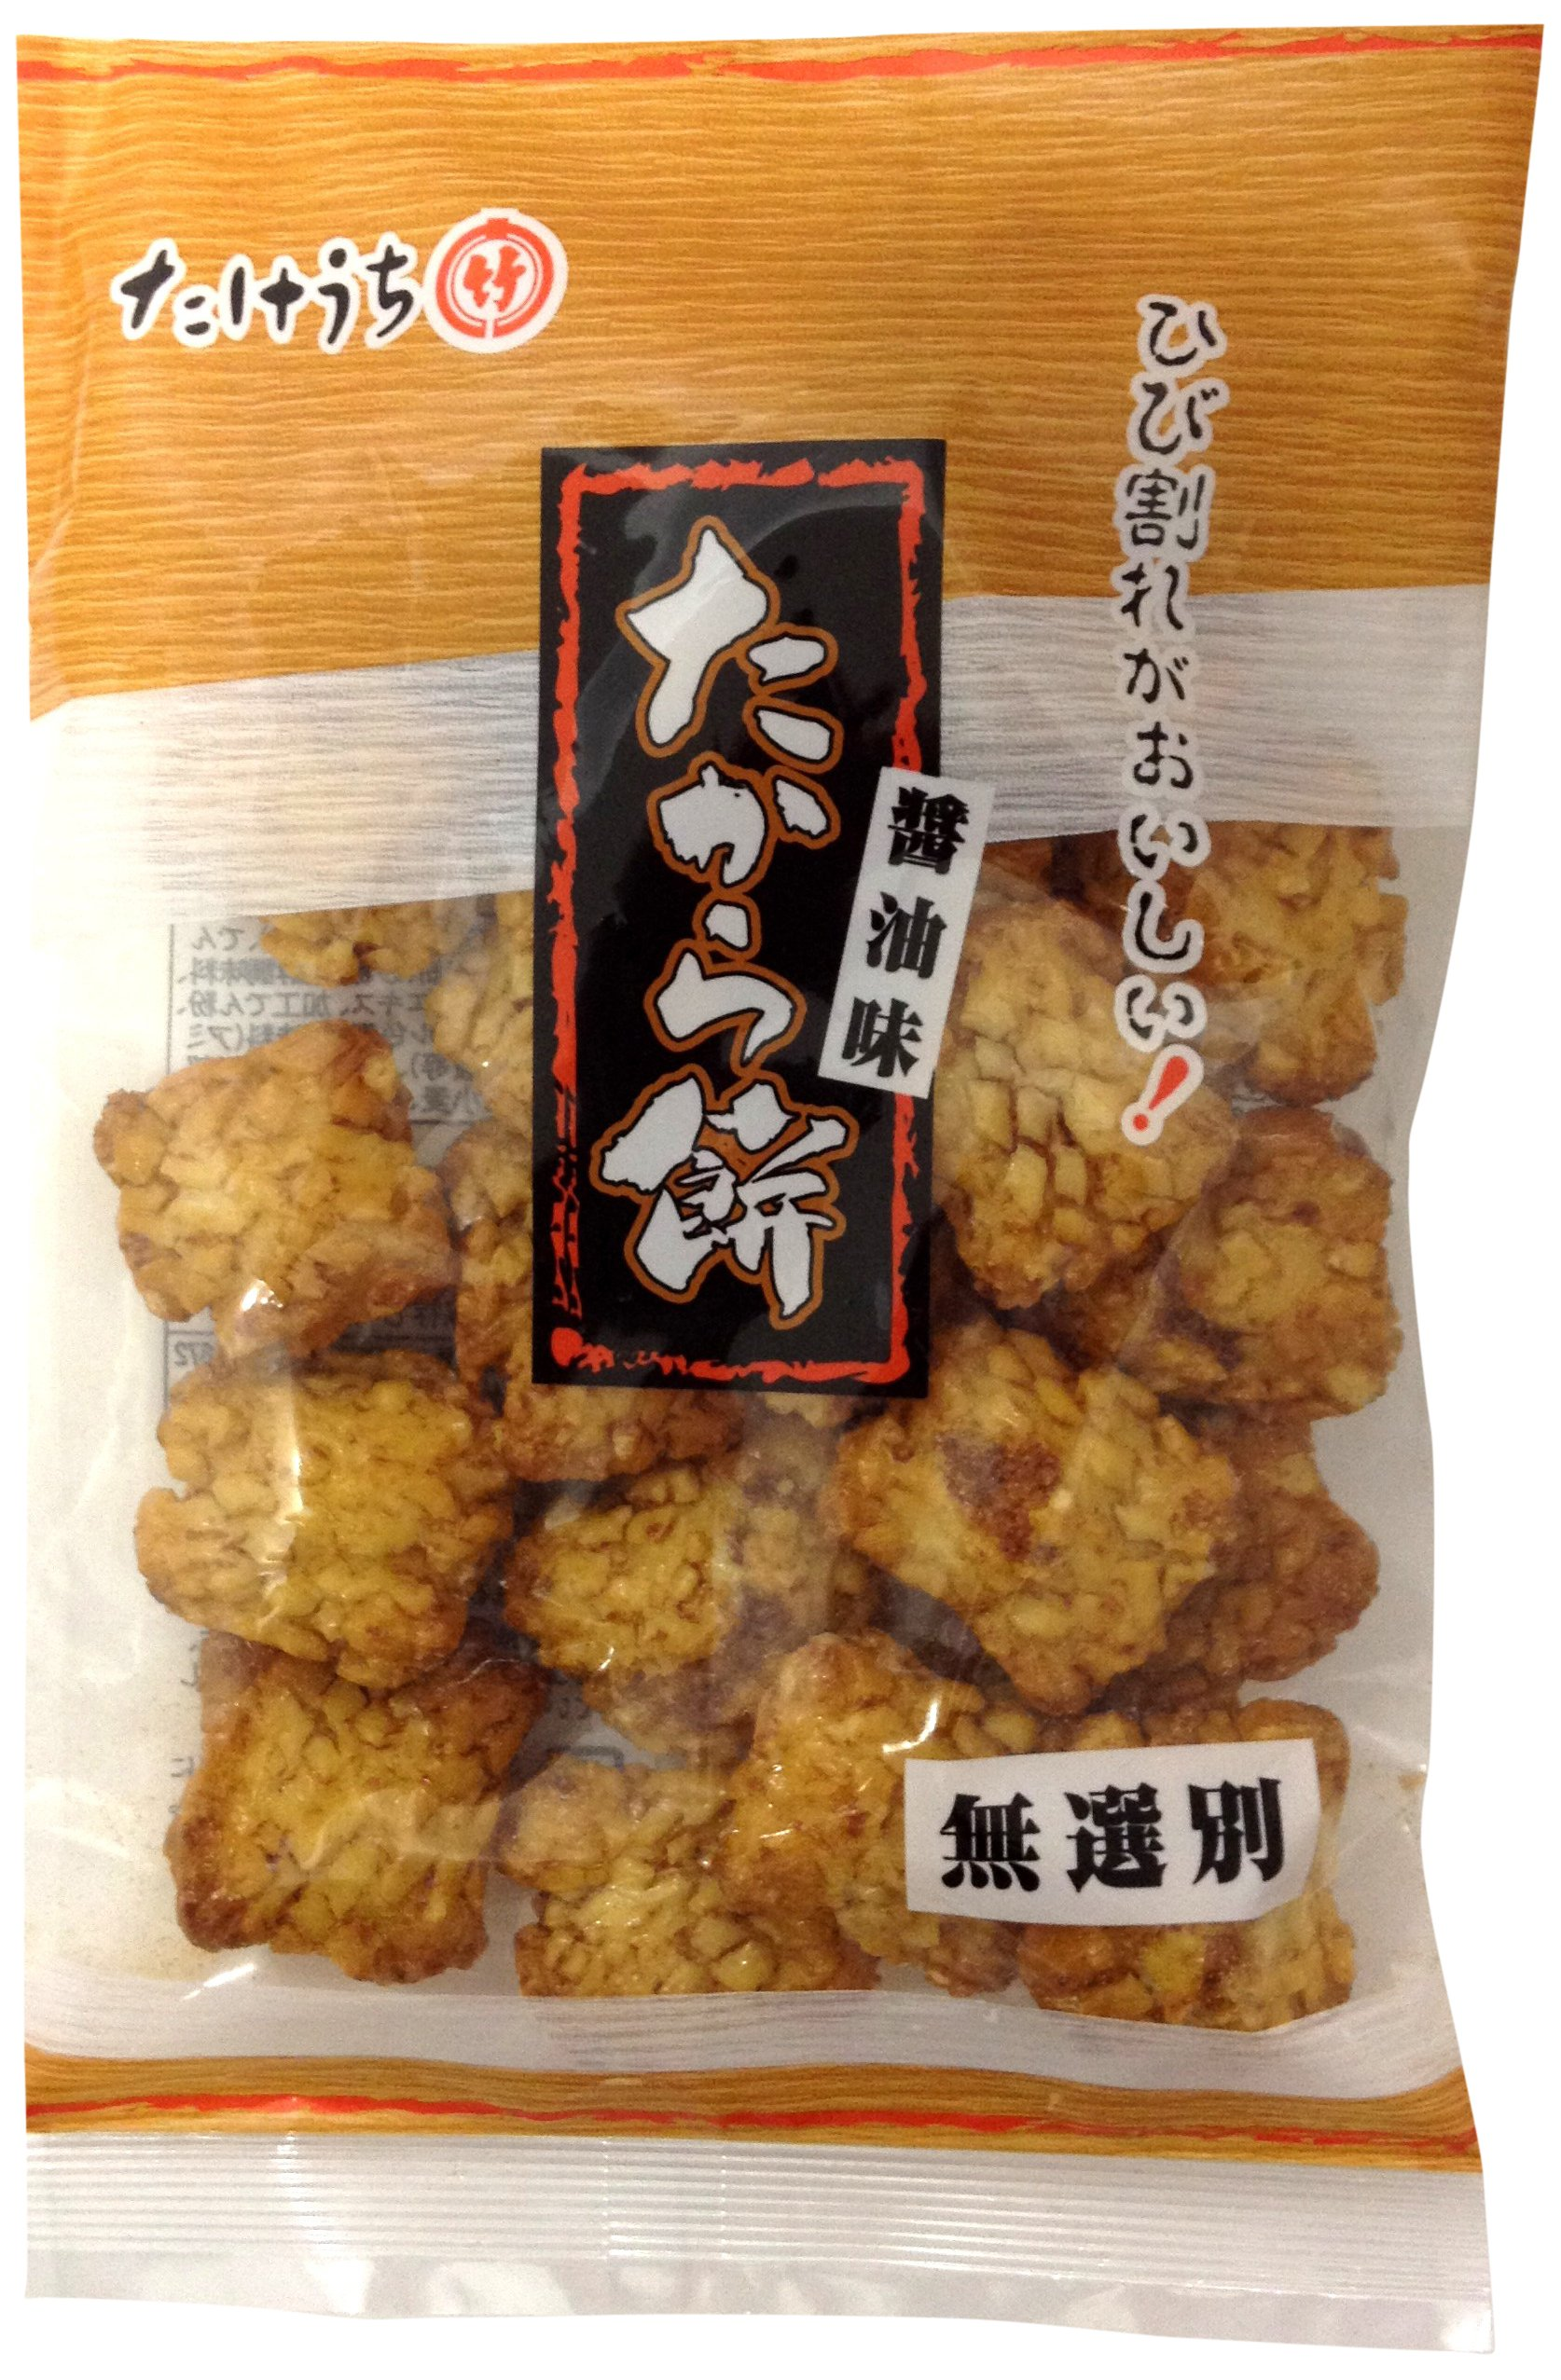 75gX15 bags mochi soy sauce and because was Takeuchi confectionery